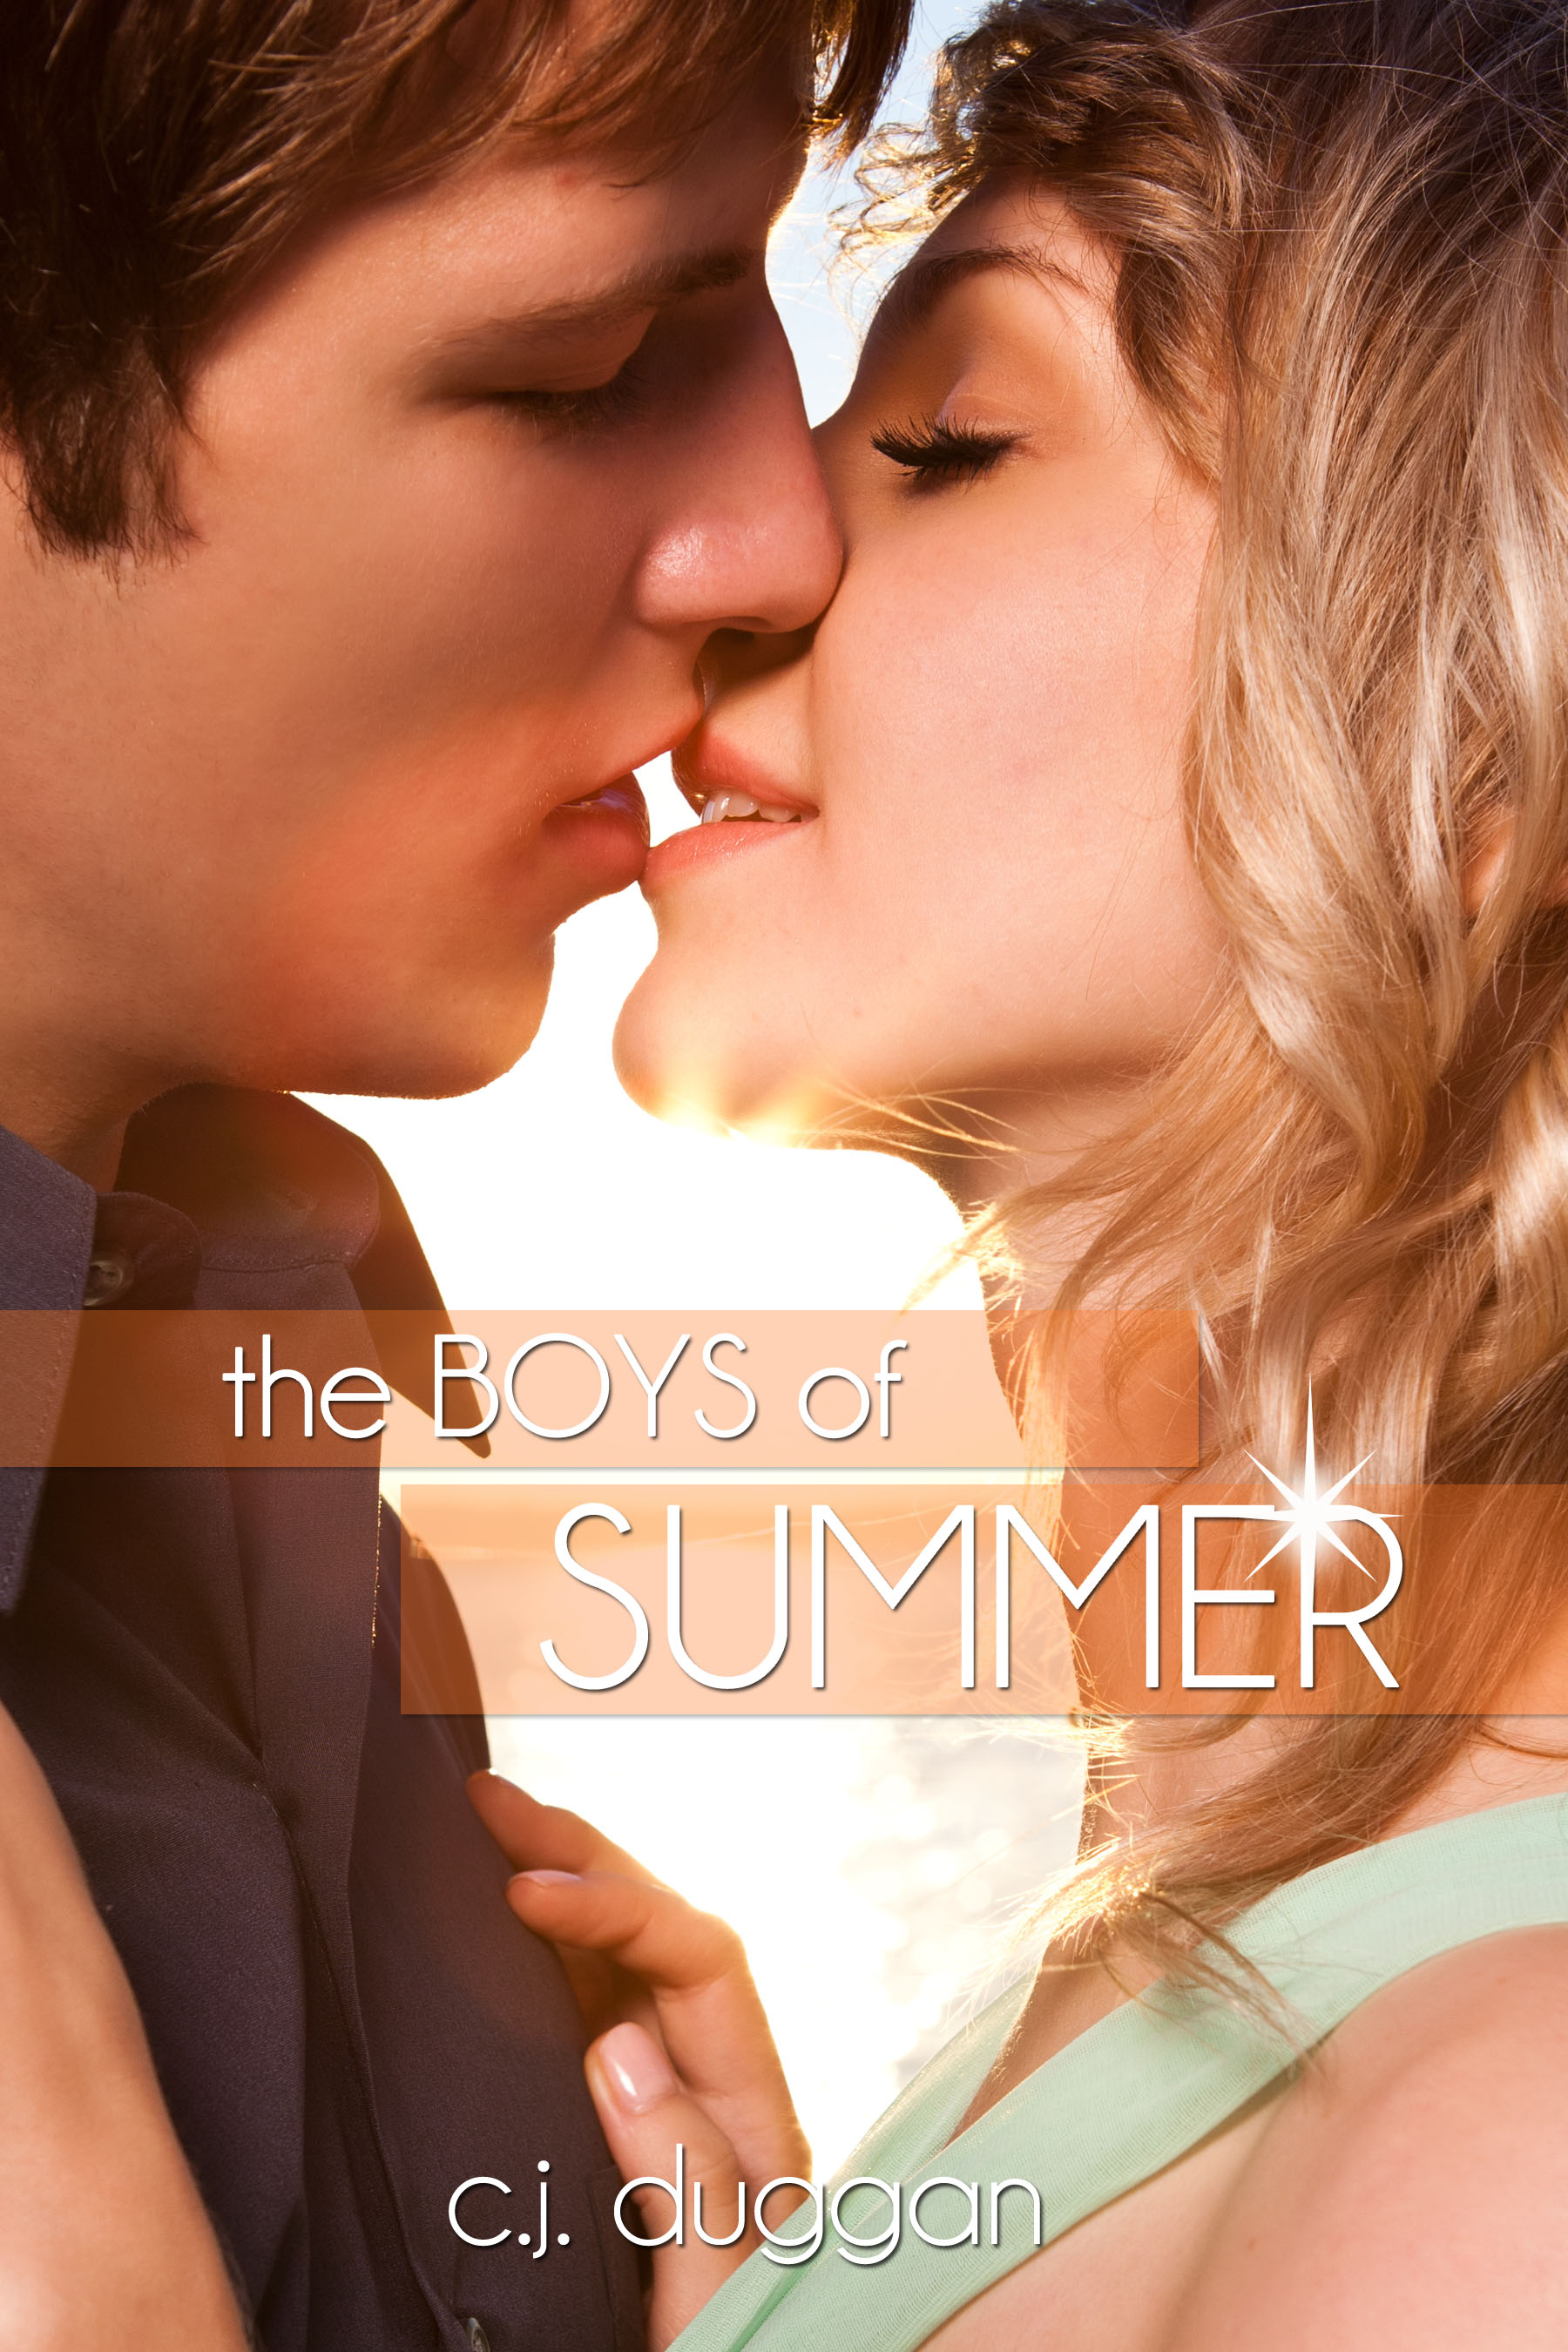 The Boys of Summer (The Summer Series) (Volume 1) (sst-ccclxi)